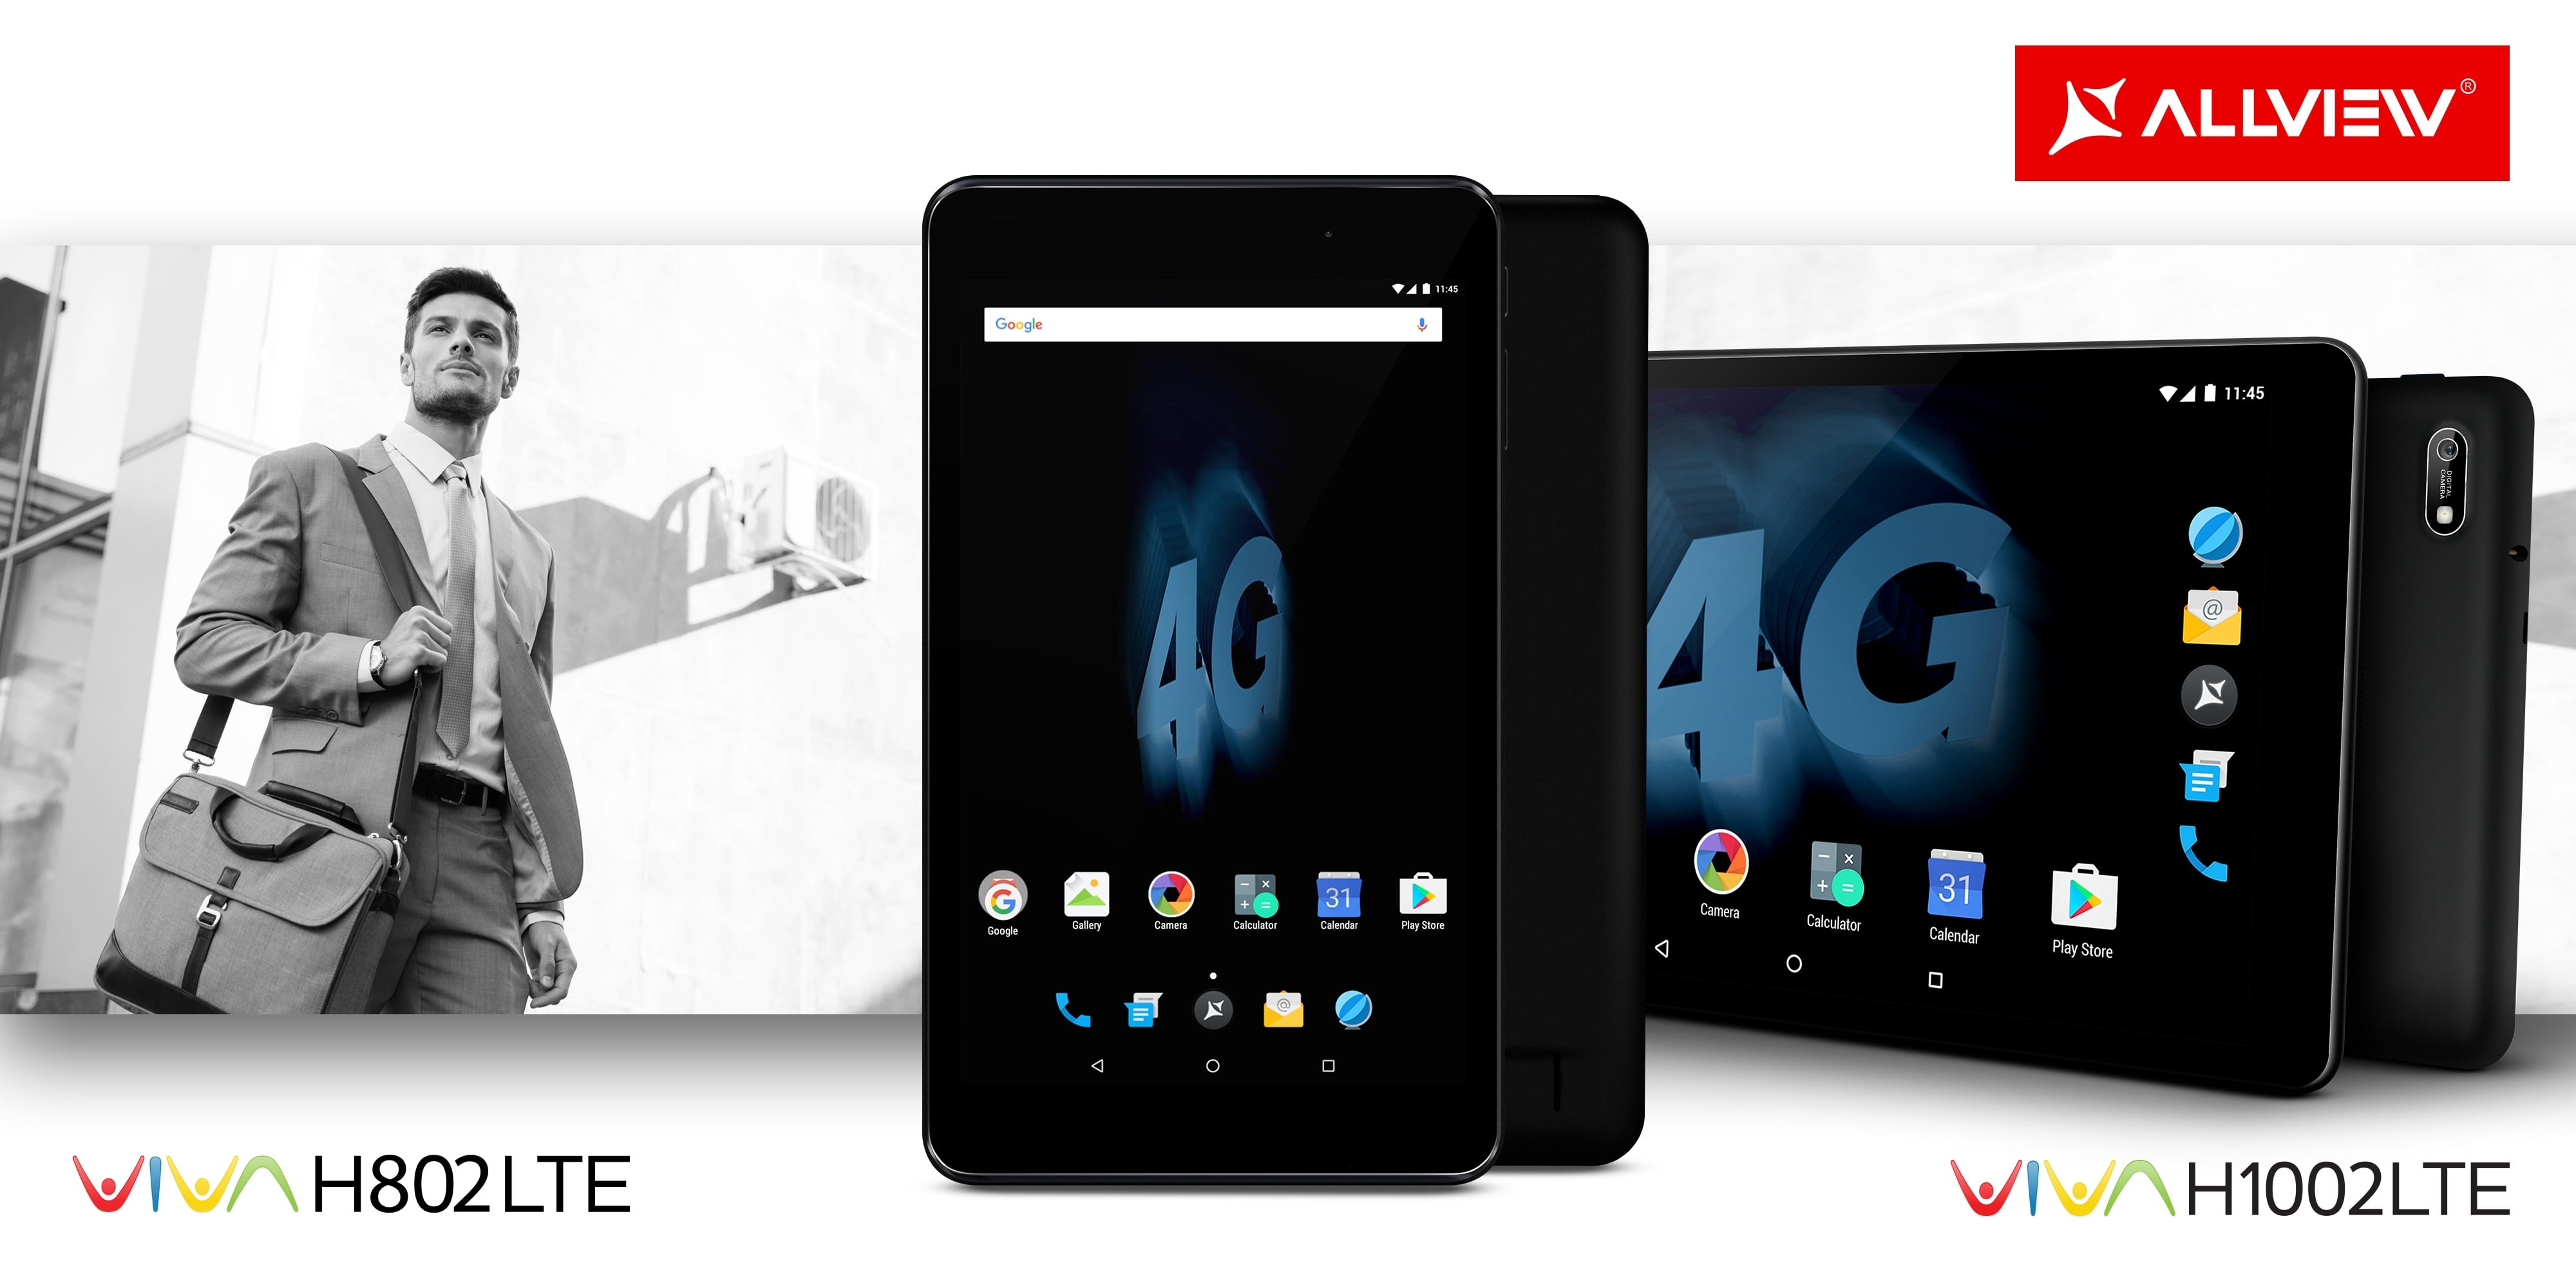 Tabletowo.pl Viva H1001 LTE i Viva H802 LTE to dwa nowe tablety Allview z LTE i Androidem 7.0 Nougat Allview Android Nowości Tablety